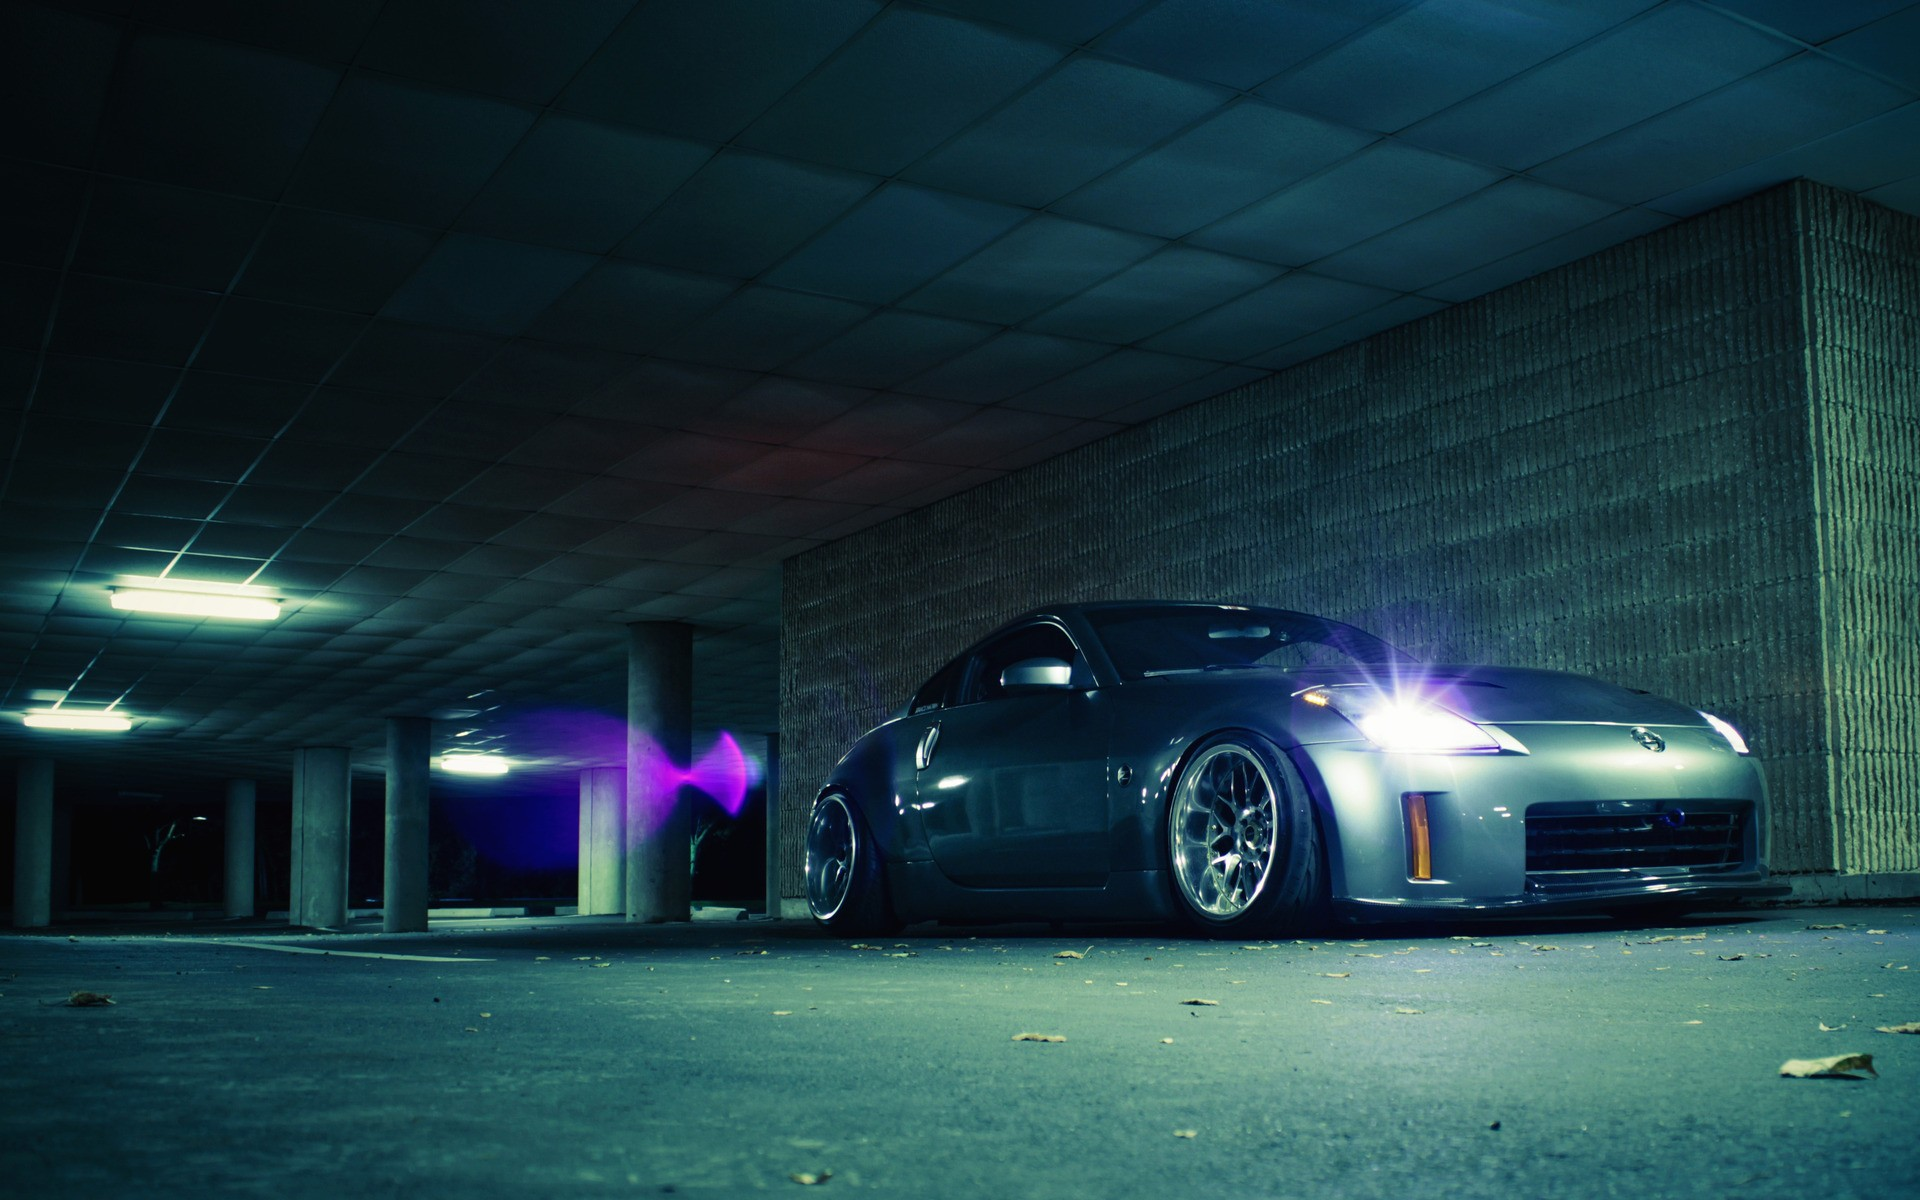 1920x1200 - Nissan 350Z Wallpapers 21